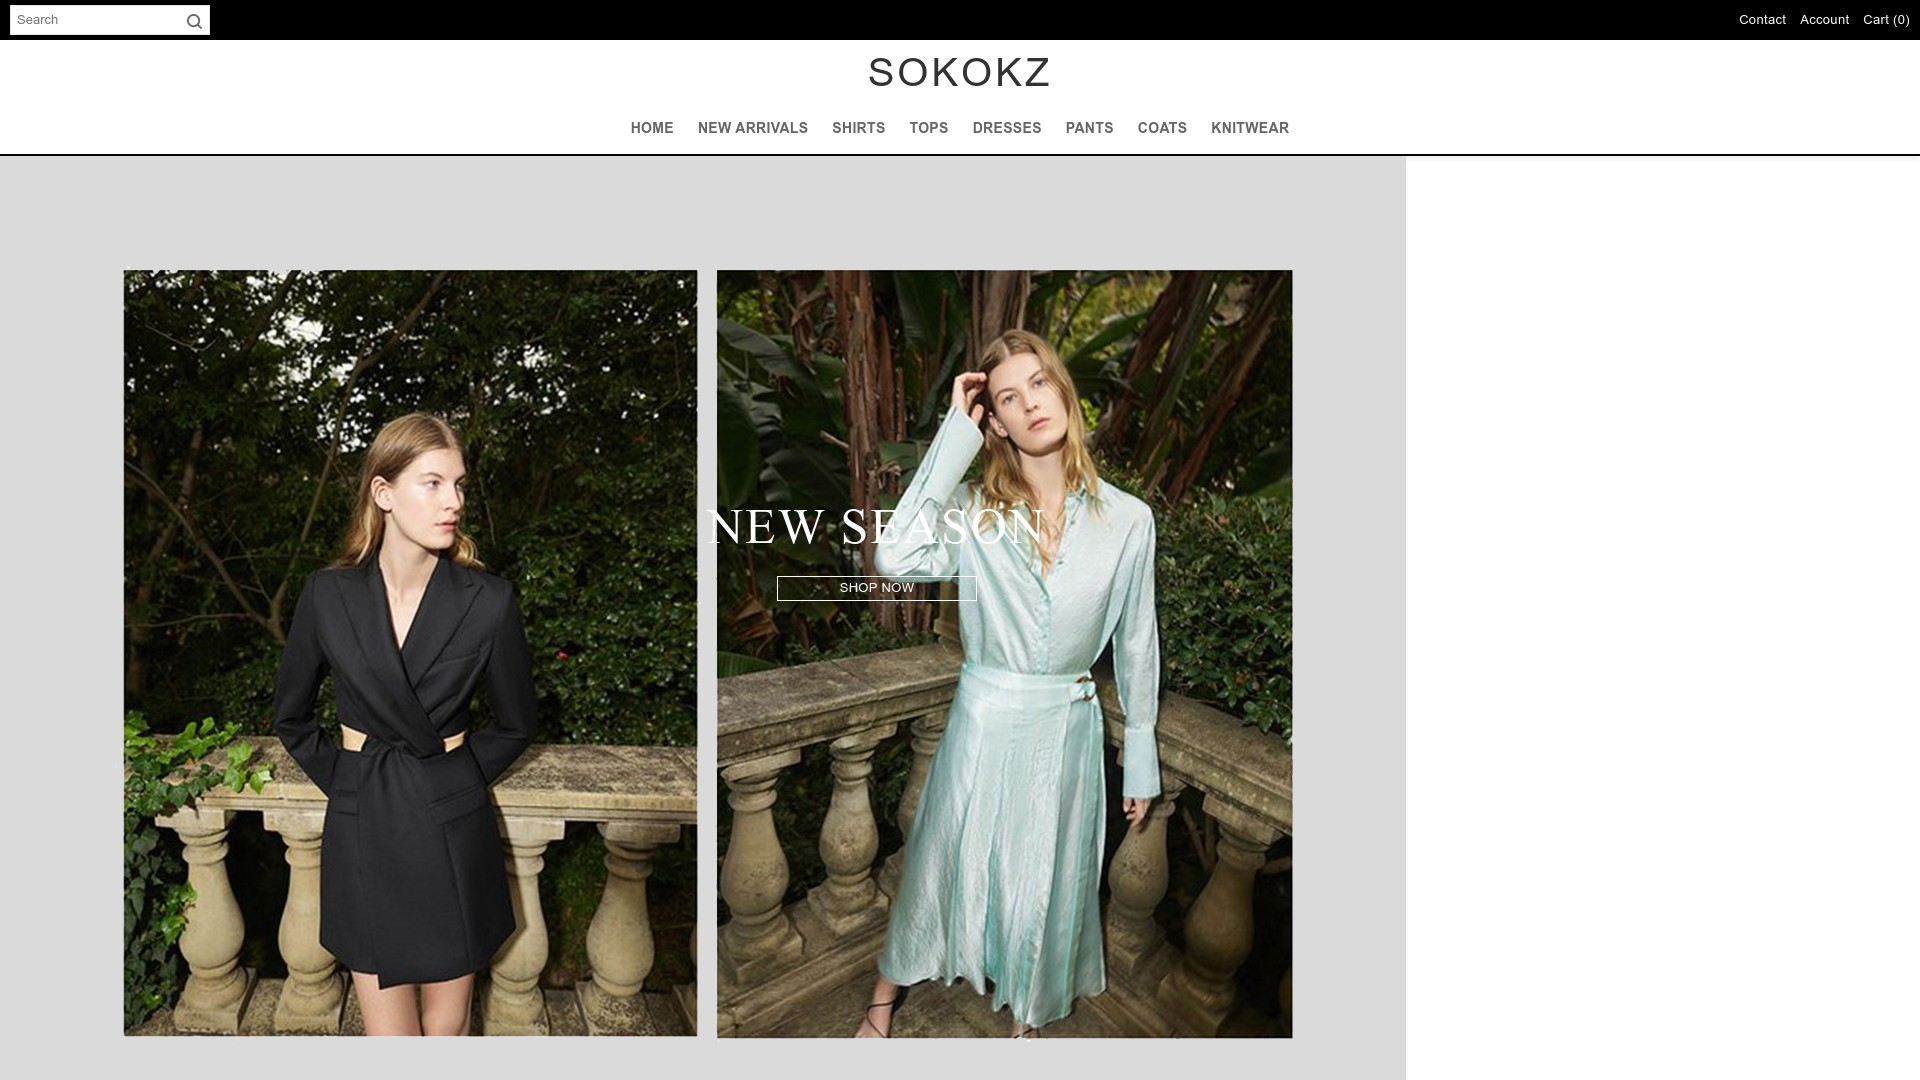 Is Sokokz a Scam? See Review of the Apparel Store